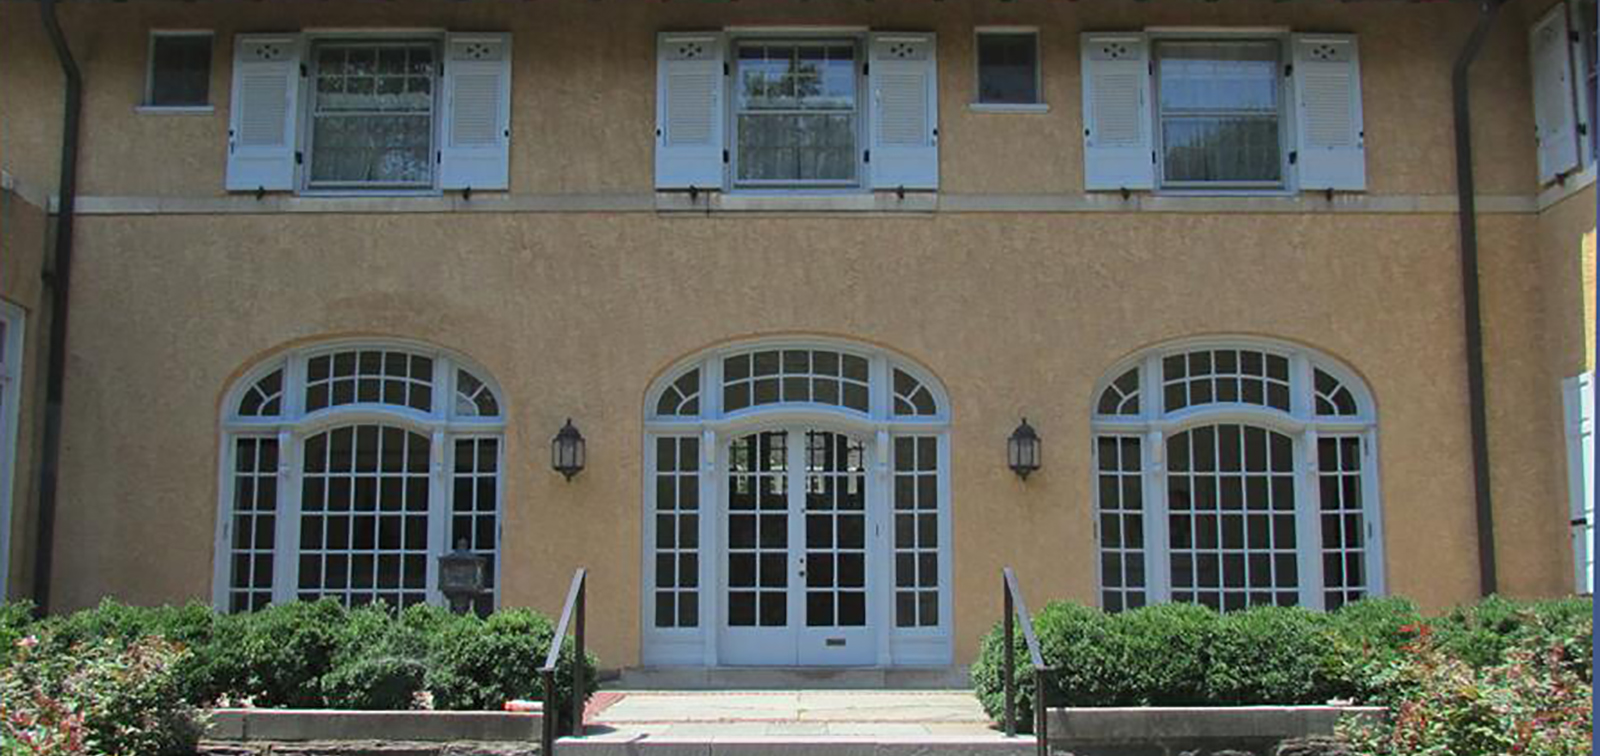 photo of 3 doors with palladium arches with 41 window panes each with sash windows on second floor